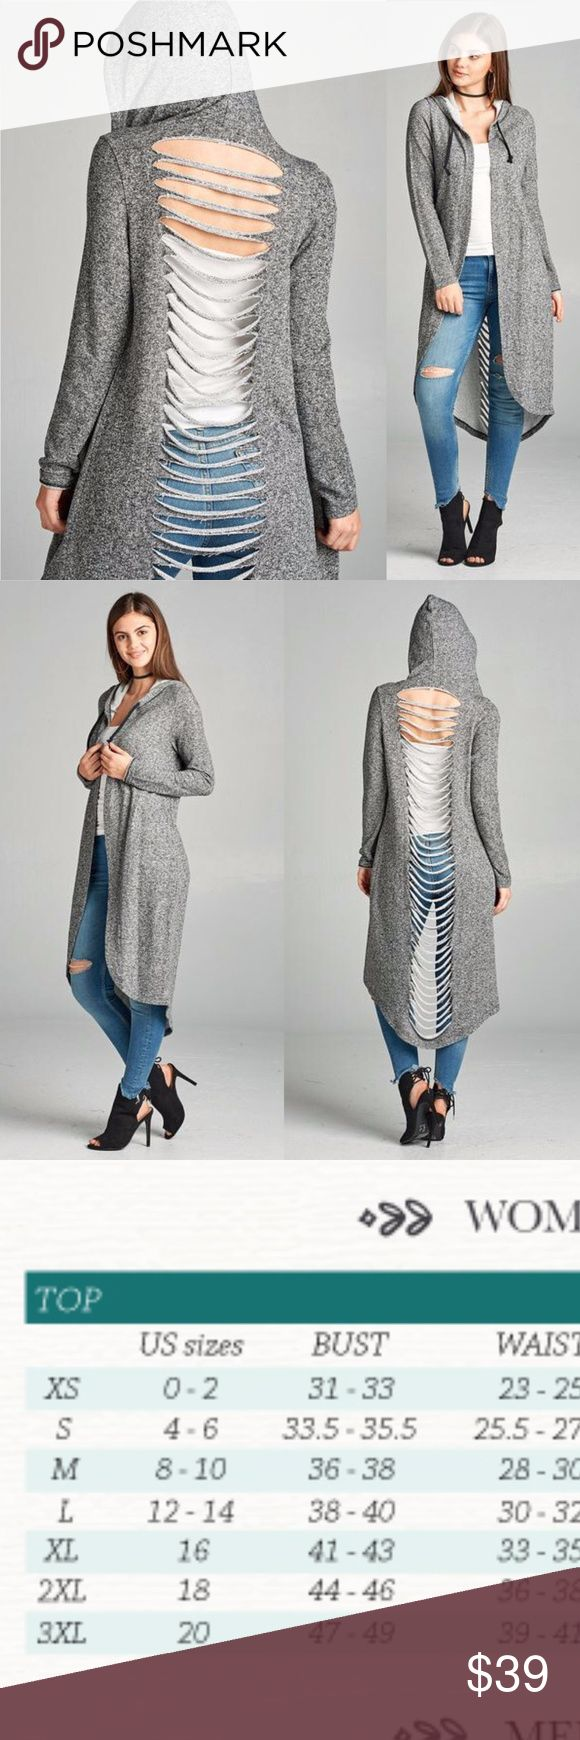 NEW S,M Cut-Out Back French Terry Hoodie Sweater New french terry grey hoodie with cut-out back ladder style design. 70% polyester 30% cotton. Long duster style drape with open front. Drawstring hood, long sleeve. Trendy modern style.  No trades, bundle discounts and offers welcome. Fast shipping. boutique Sweaters Cardigans